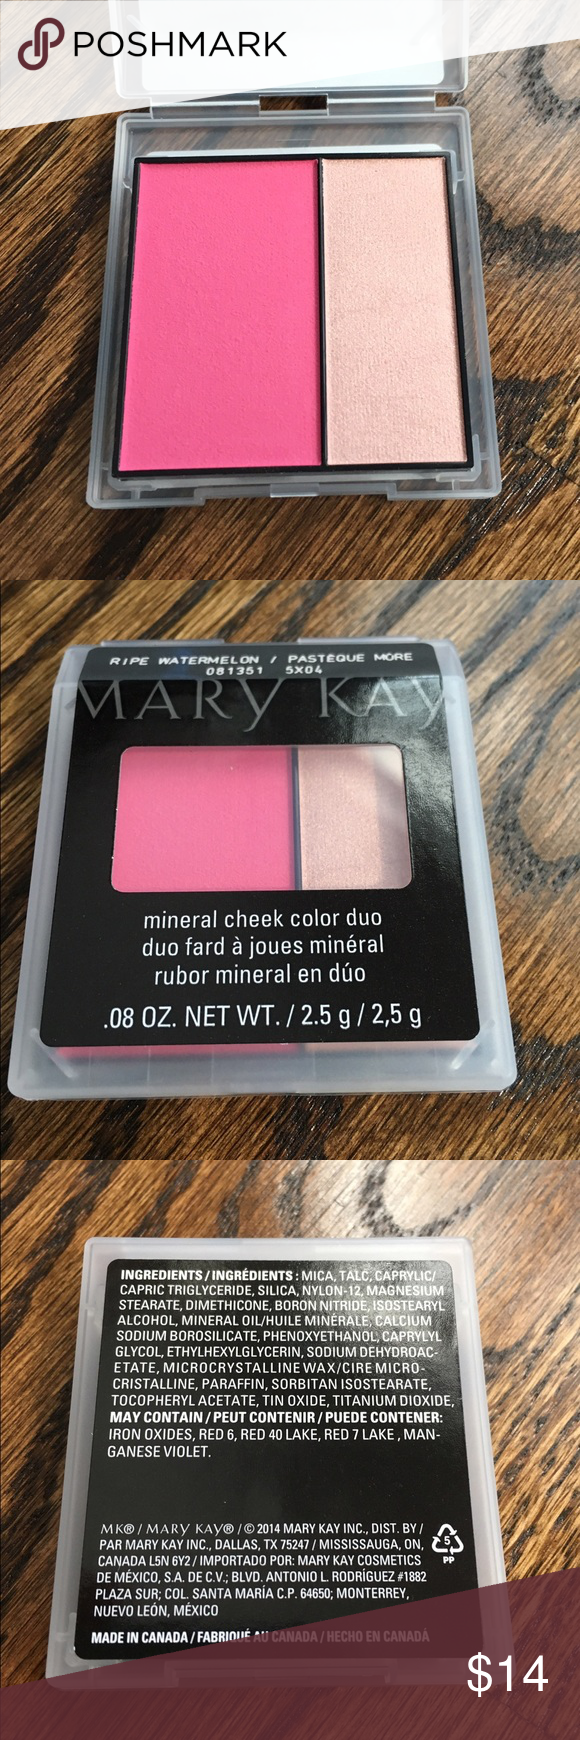 MK mineral cheek color duo Mary Kay\'s mineral cheek color duo in ...